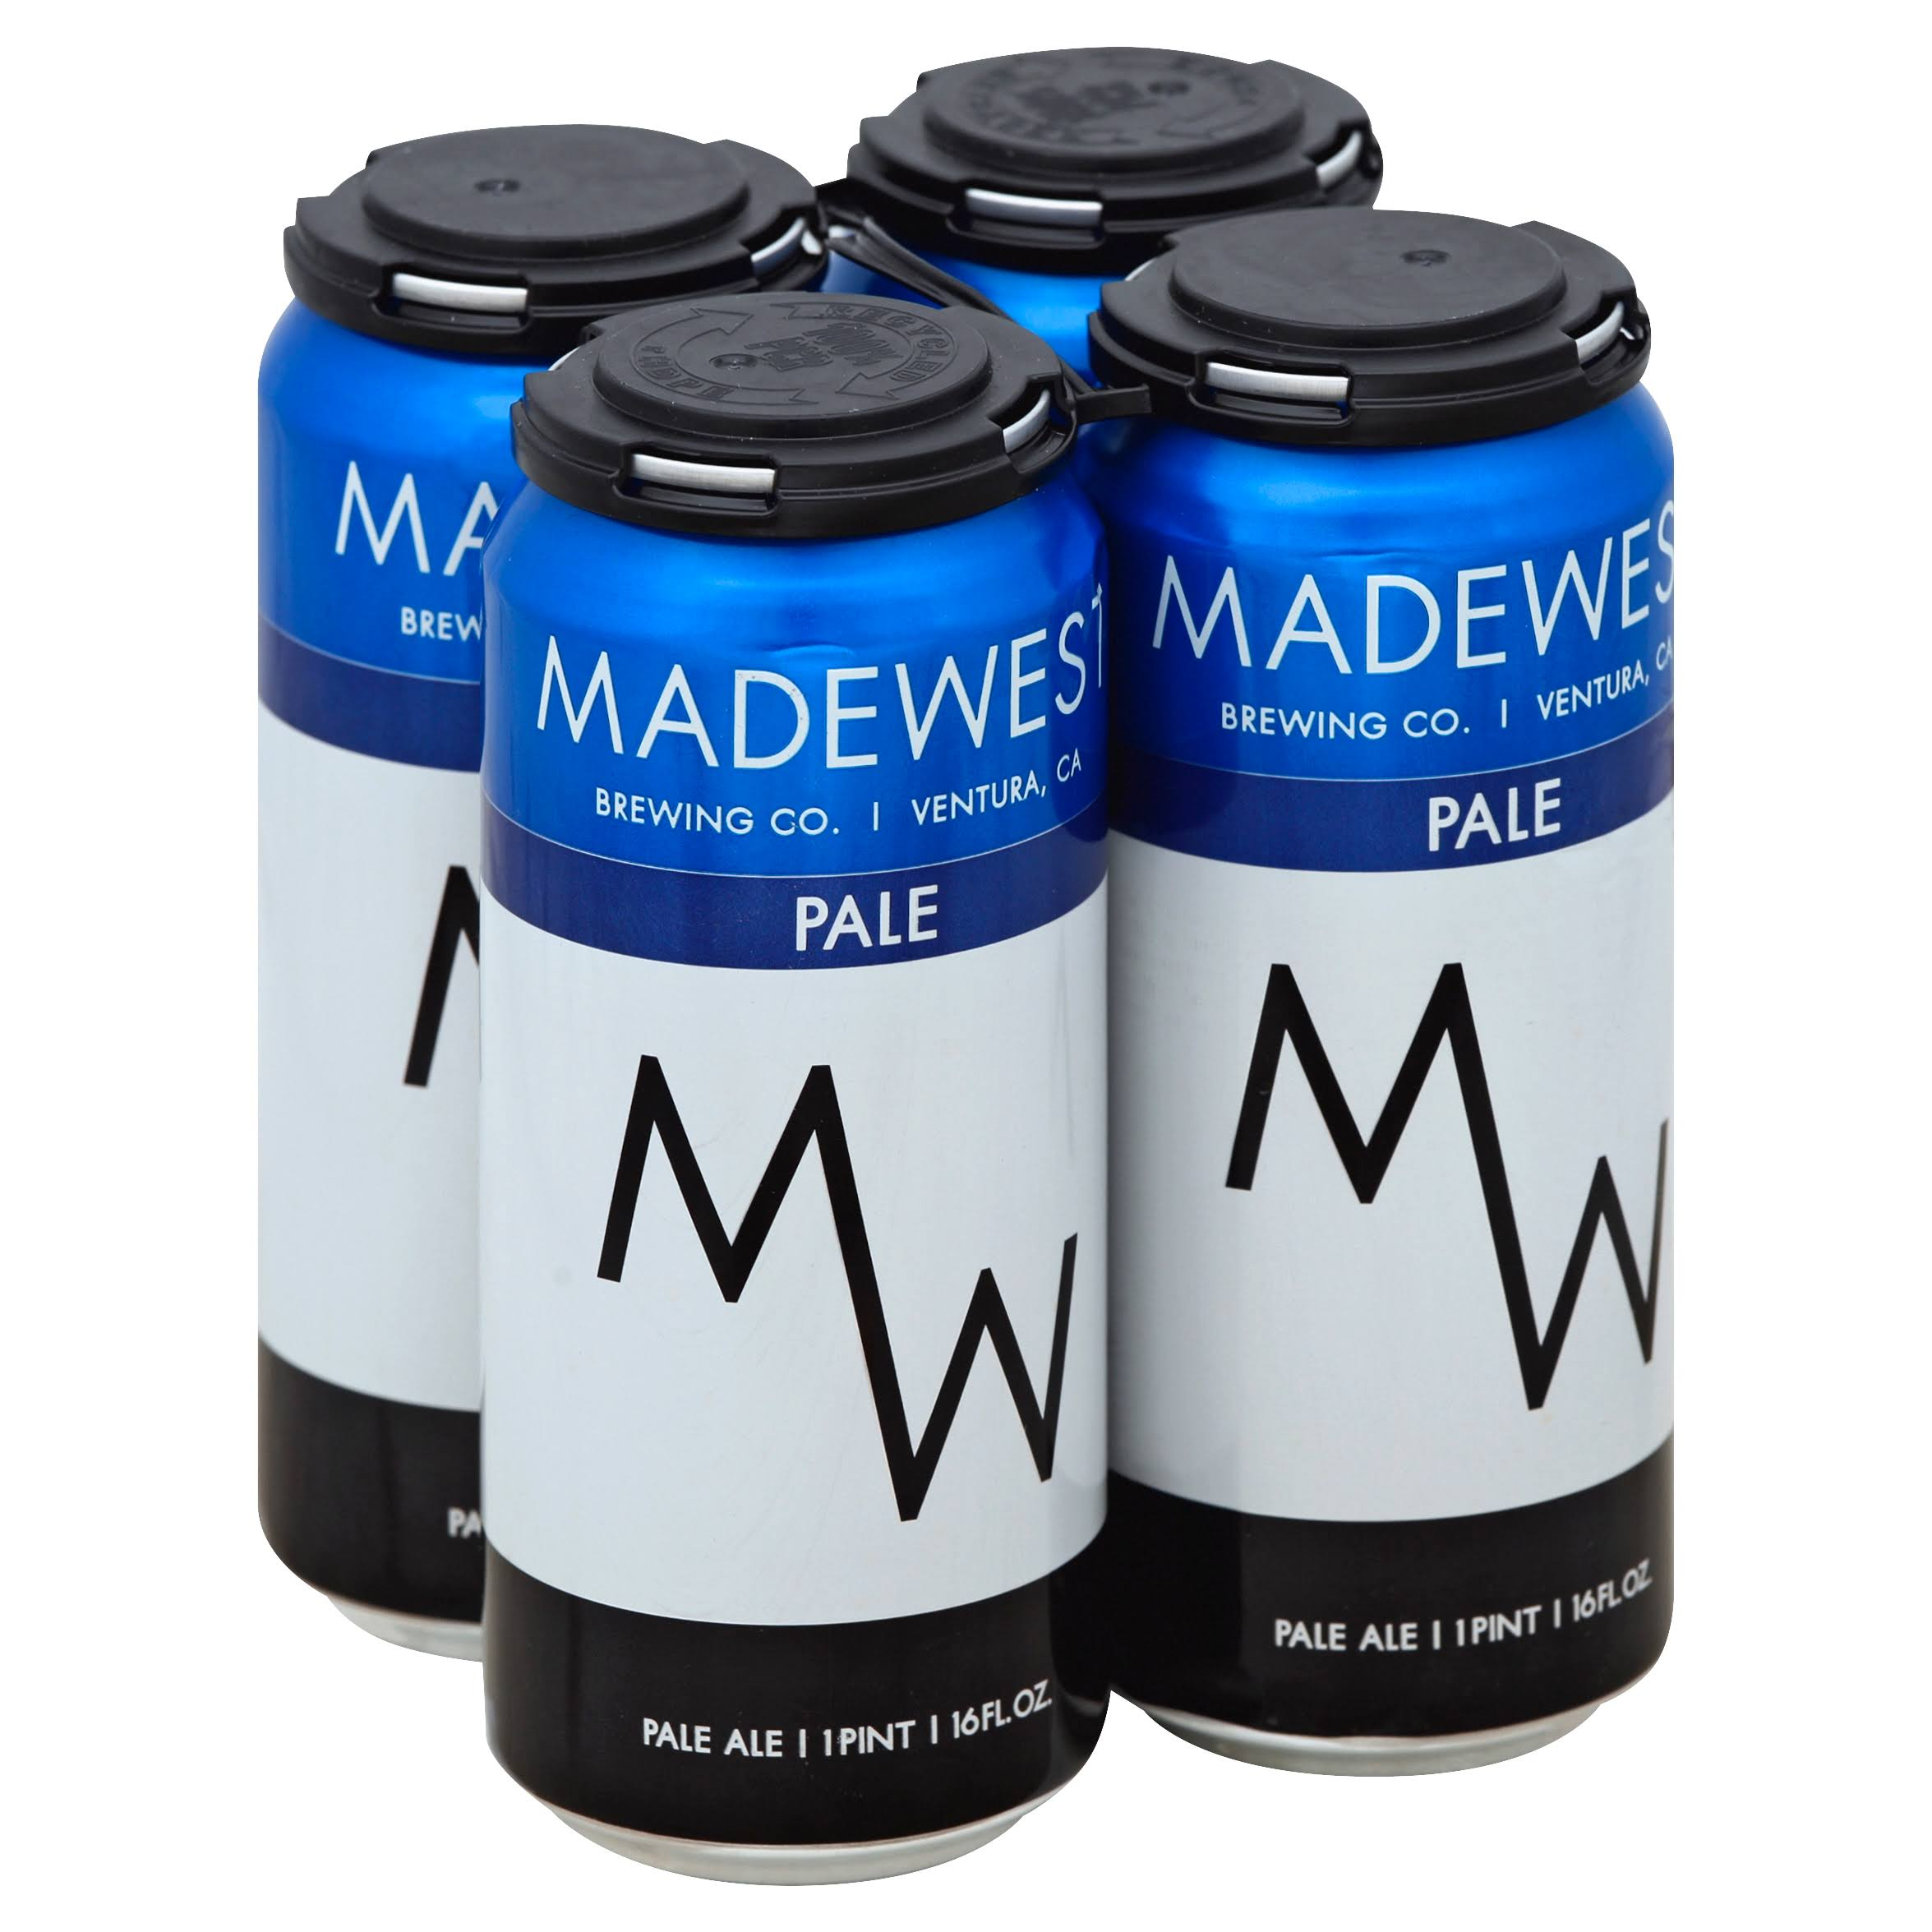 Madewest Beer, Pale Ale - 4 pack, 16 fl oz cans